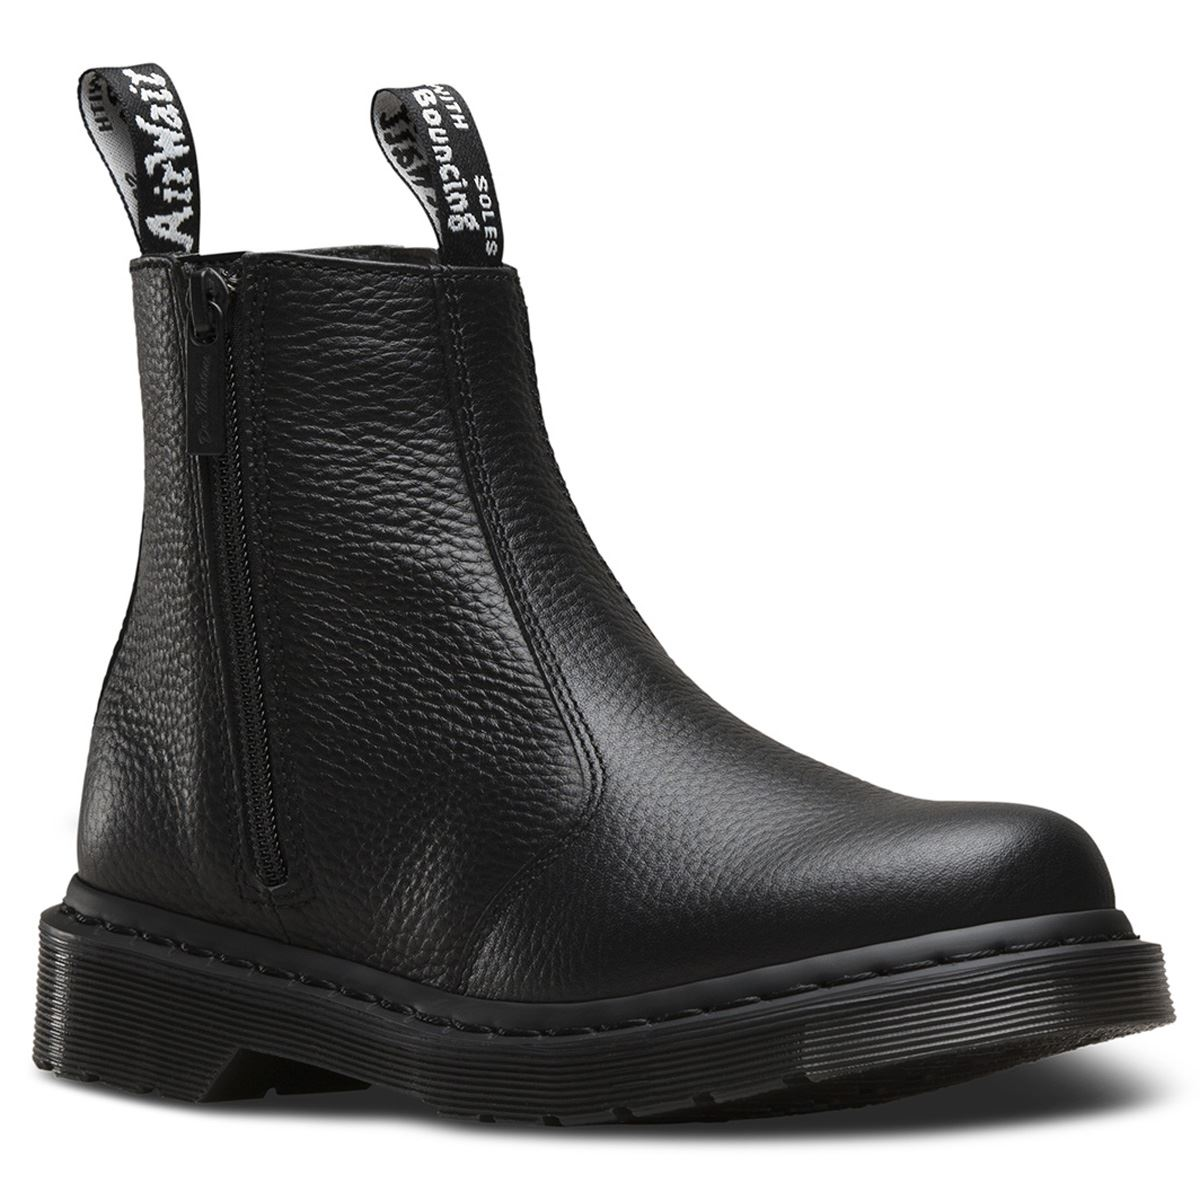 47373bf6865 Description: The black Dr. Marten's 2976 with zips Chelsea boots ...